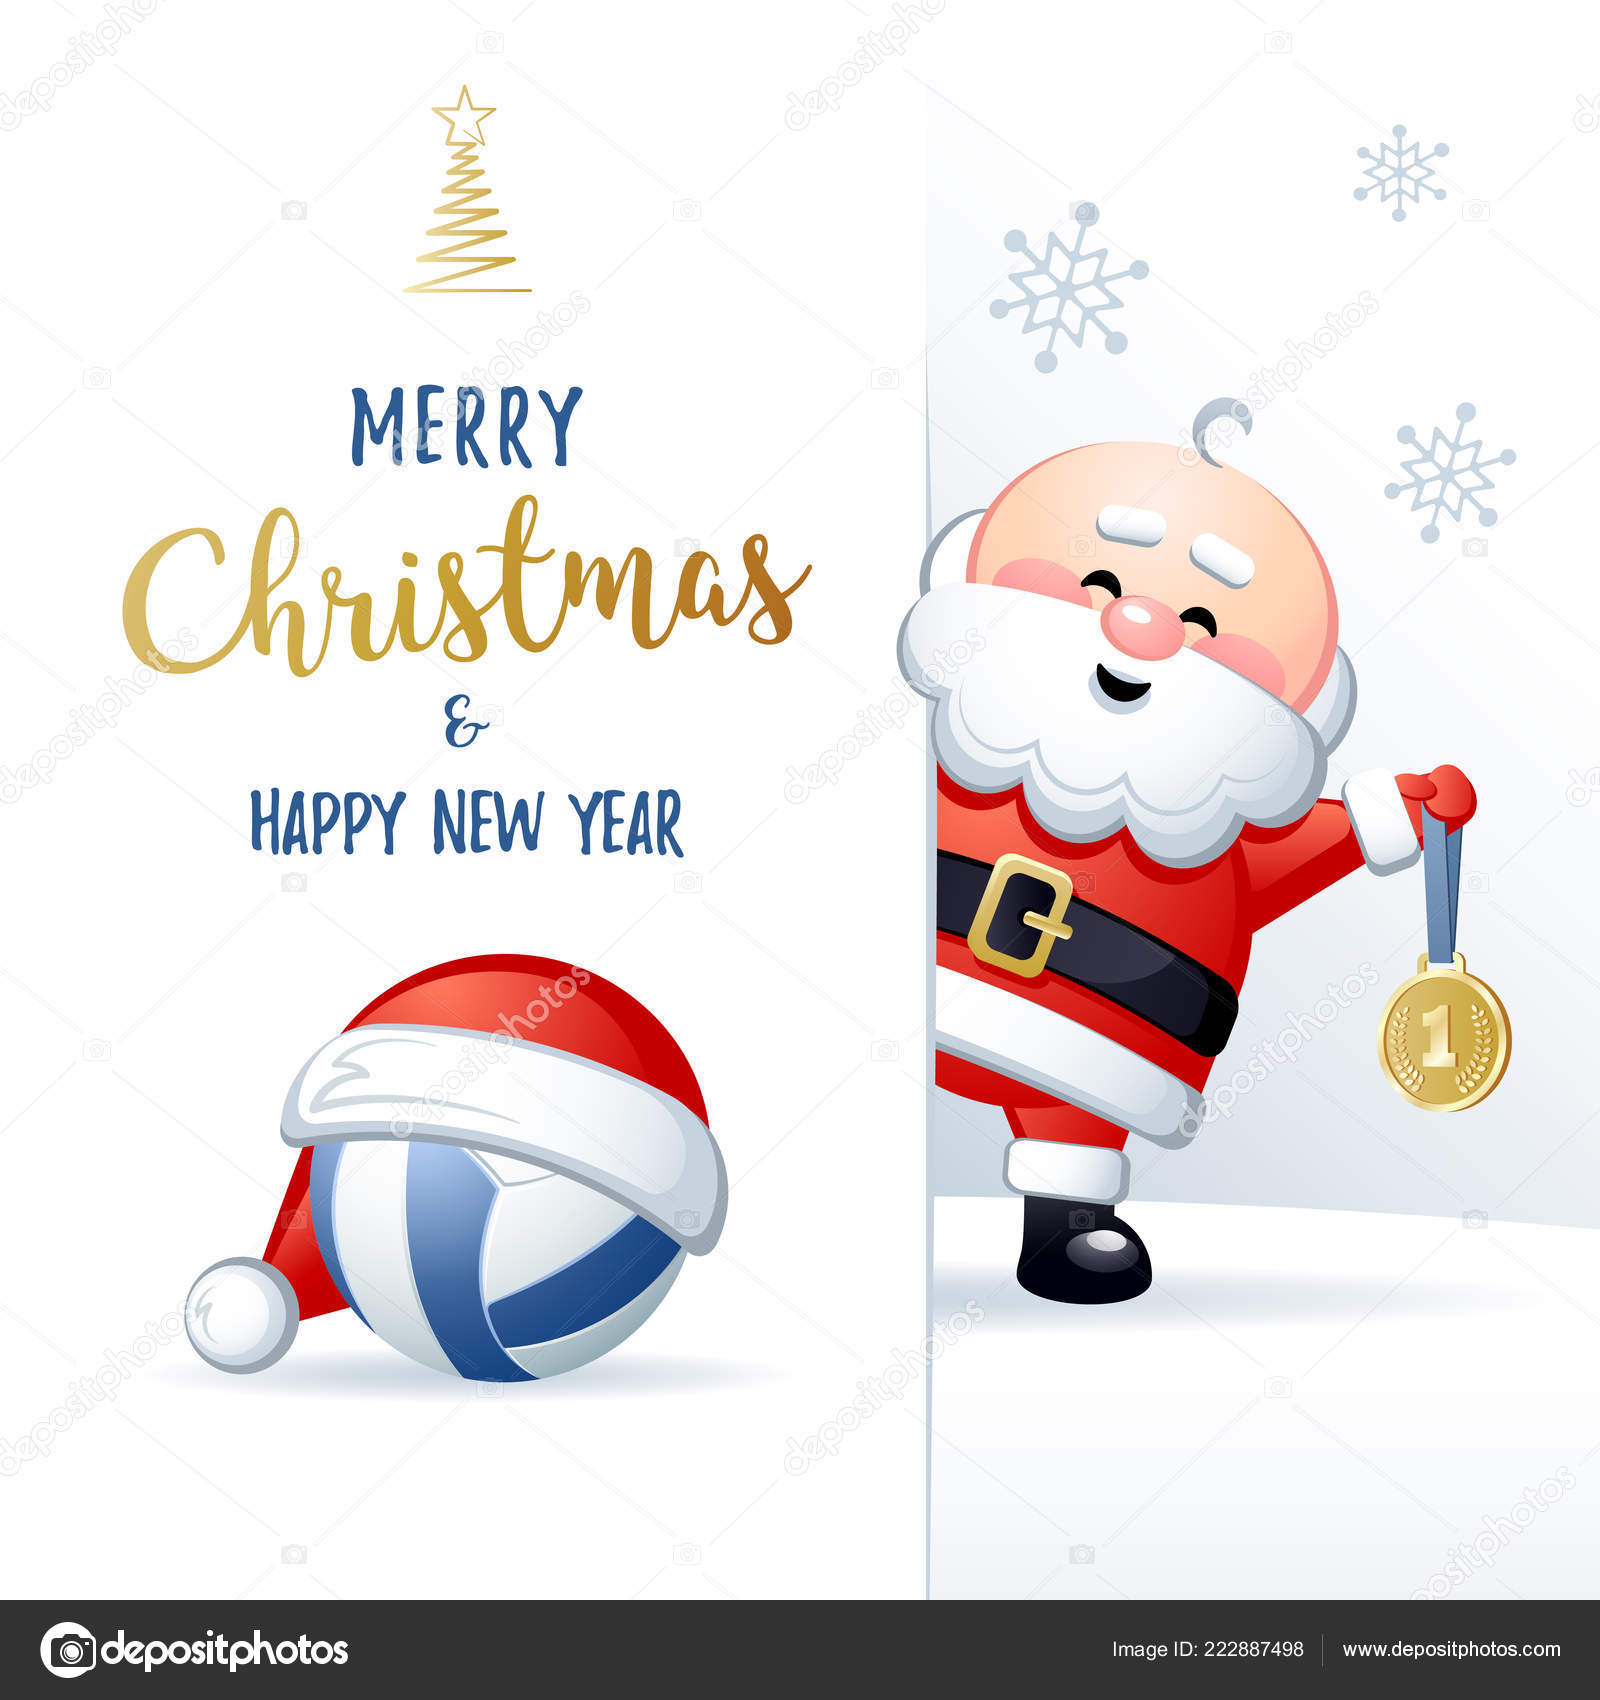 merry christmas happy new year sports greeting card cute santa stock vector